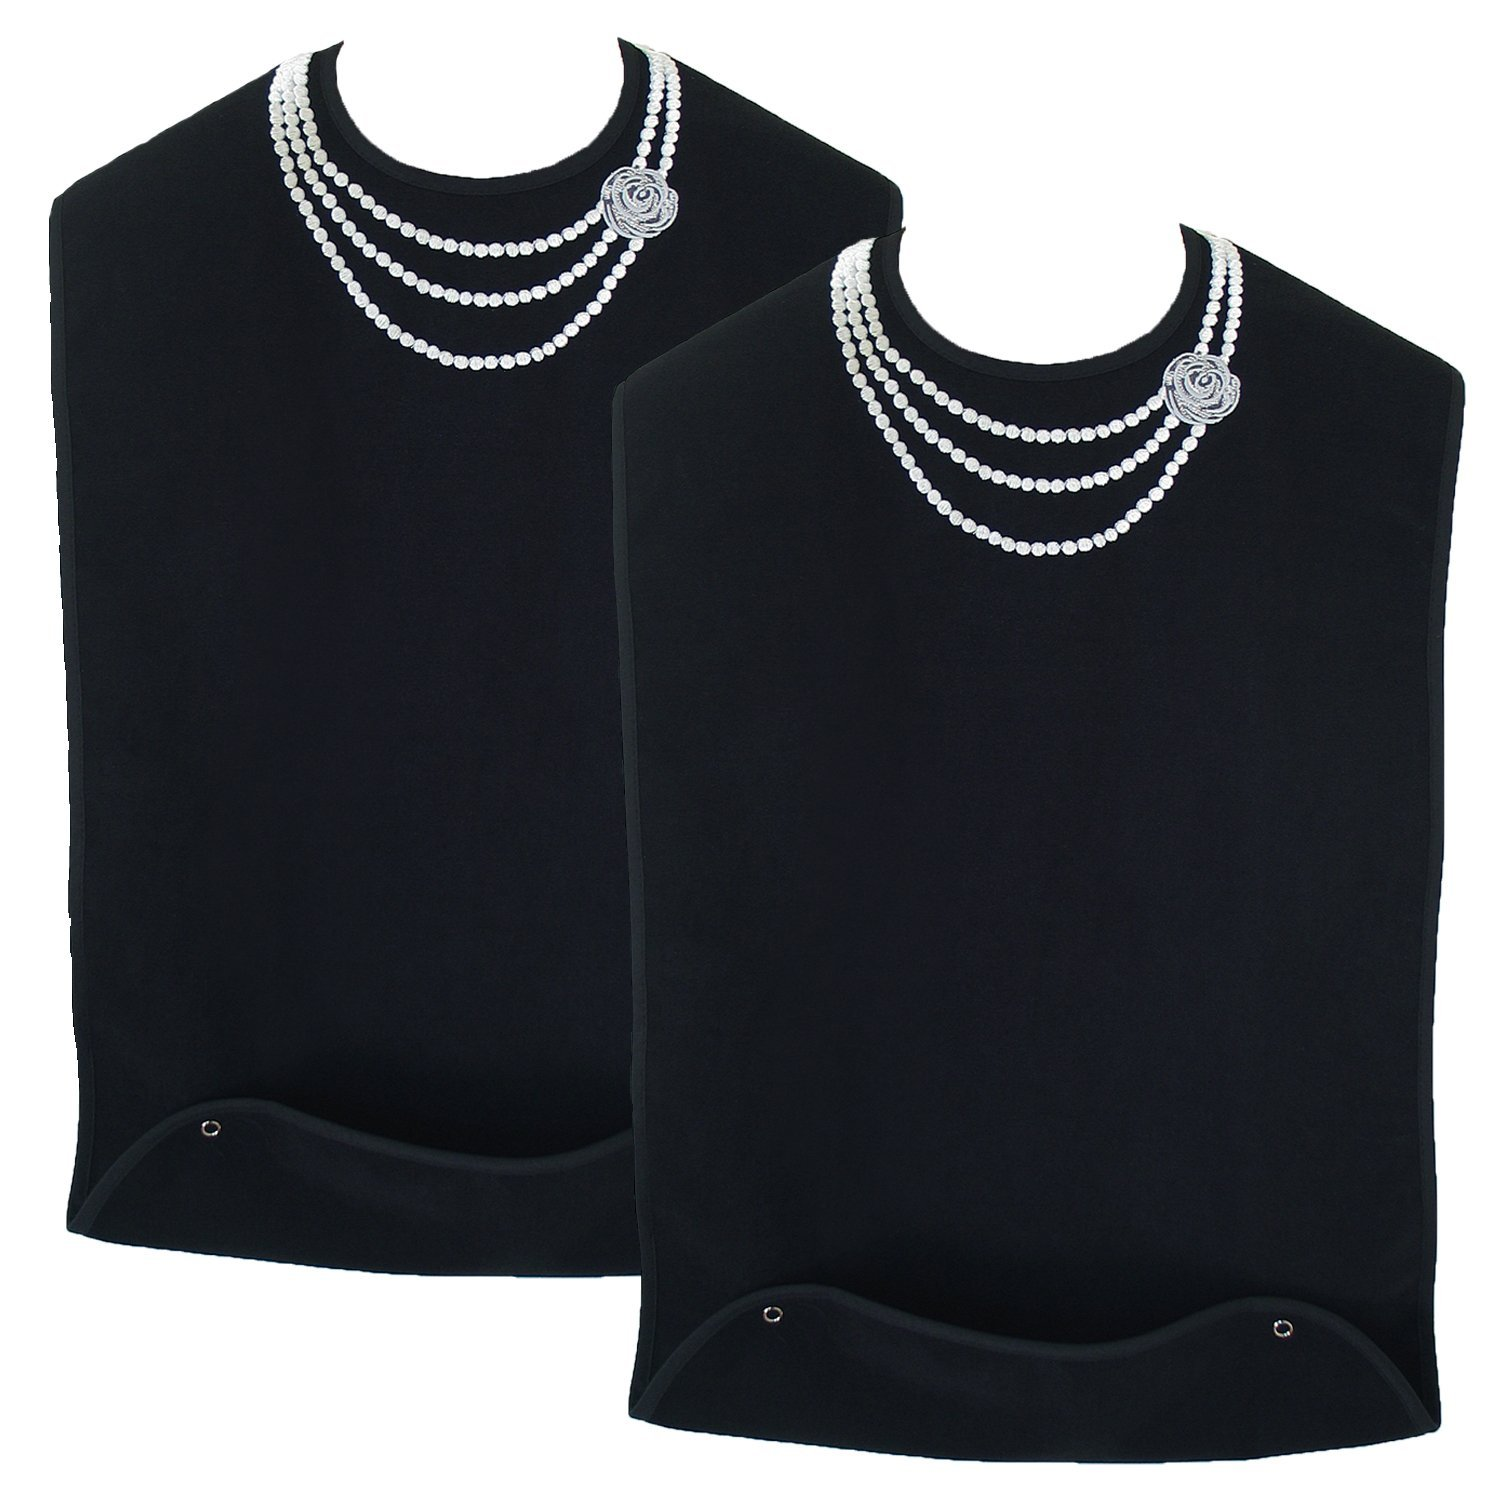 Classy Pal | Adult Bib for Women with Embroidered Design. Waterproof, Reusable & Washable | 2 Pack (Pearl Necklace + Pearl Necklace)